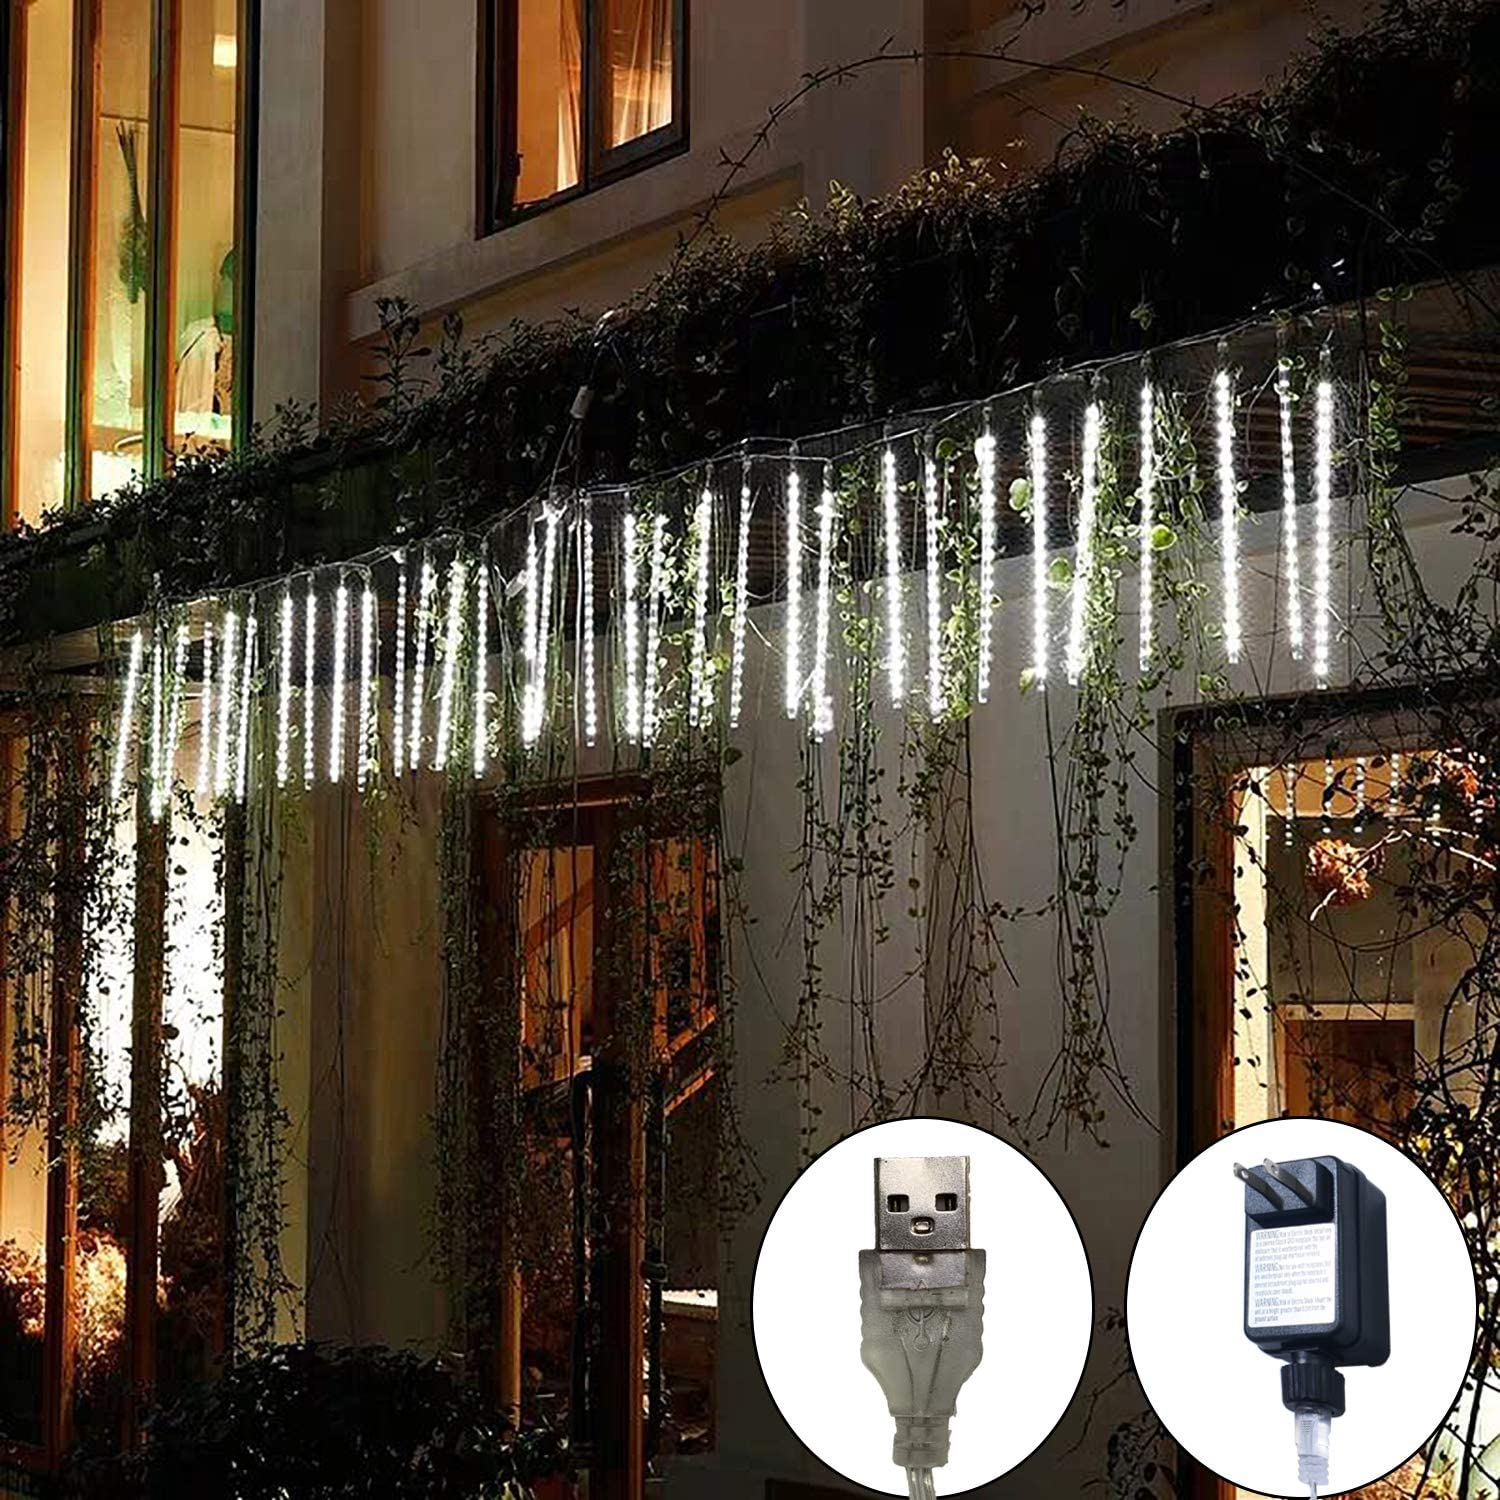 Meteor Lights for Tree, 30cm 8 Tubes 248 LED Falling Rain Drop Lights, Waterproof Cascading Lights Xmas String Lights, Meteor Shower Rain Lights for Holiday Party Birthday Shop Decoration (White)